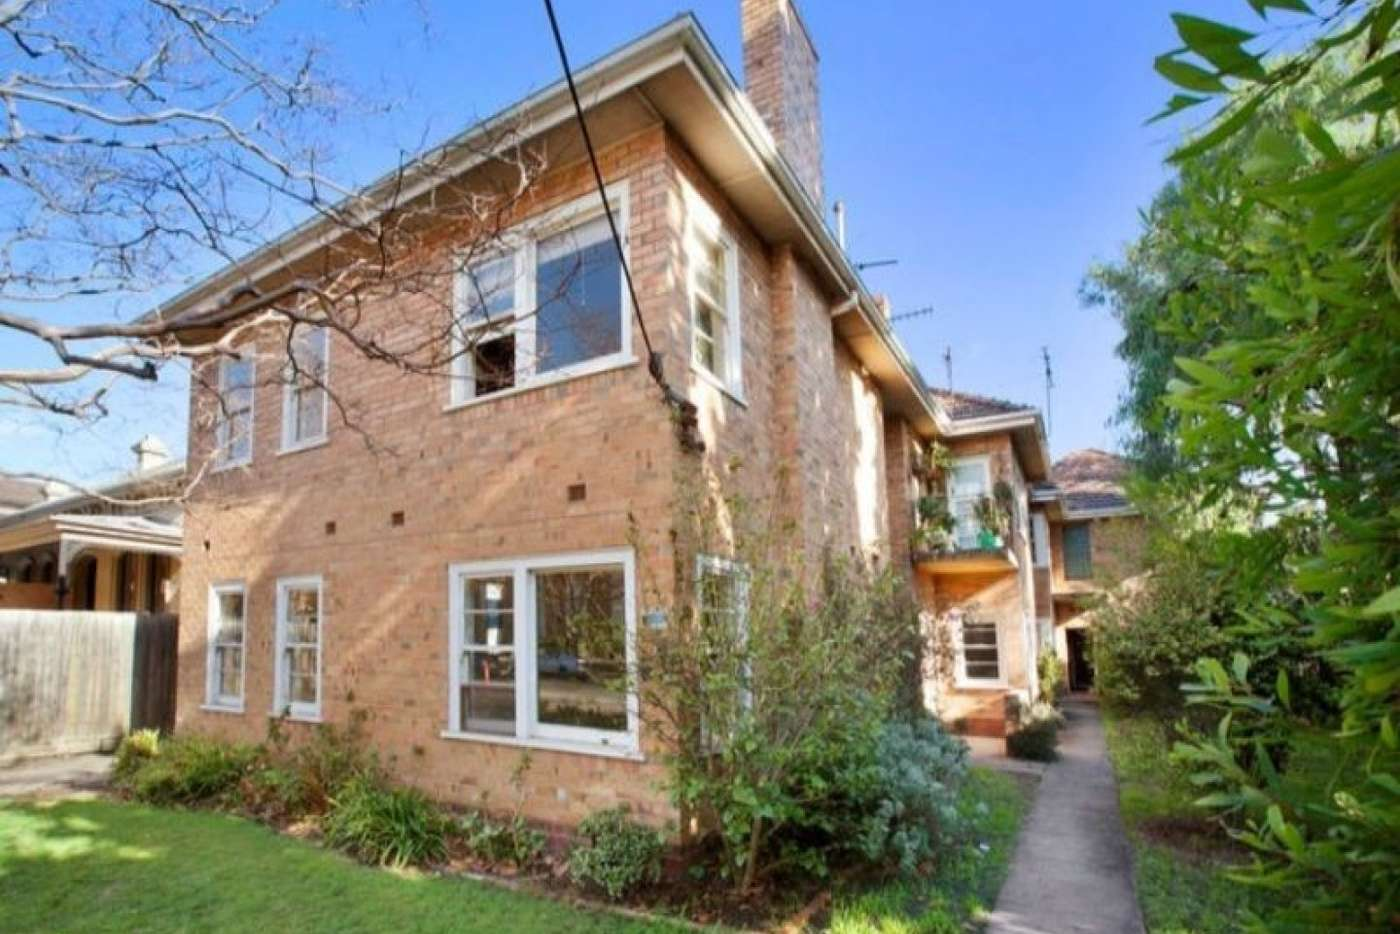 Main view of Homely apartment listing, 2/35 The Avenue, Windsor VIC 3181